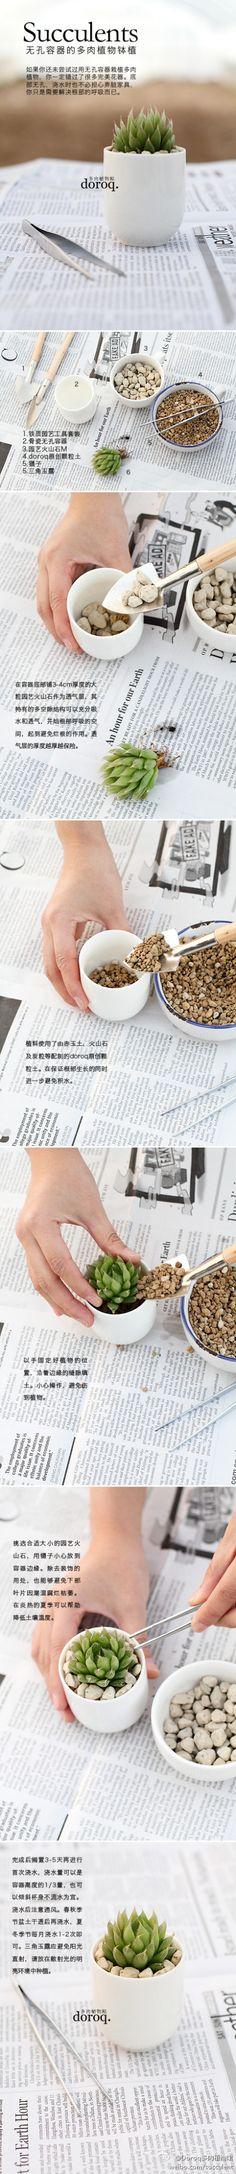 Succulent how to - in another language but it's step by step pictures. 小小玉露